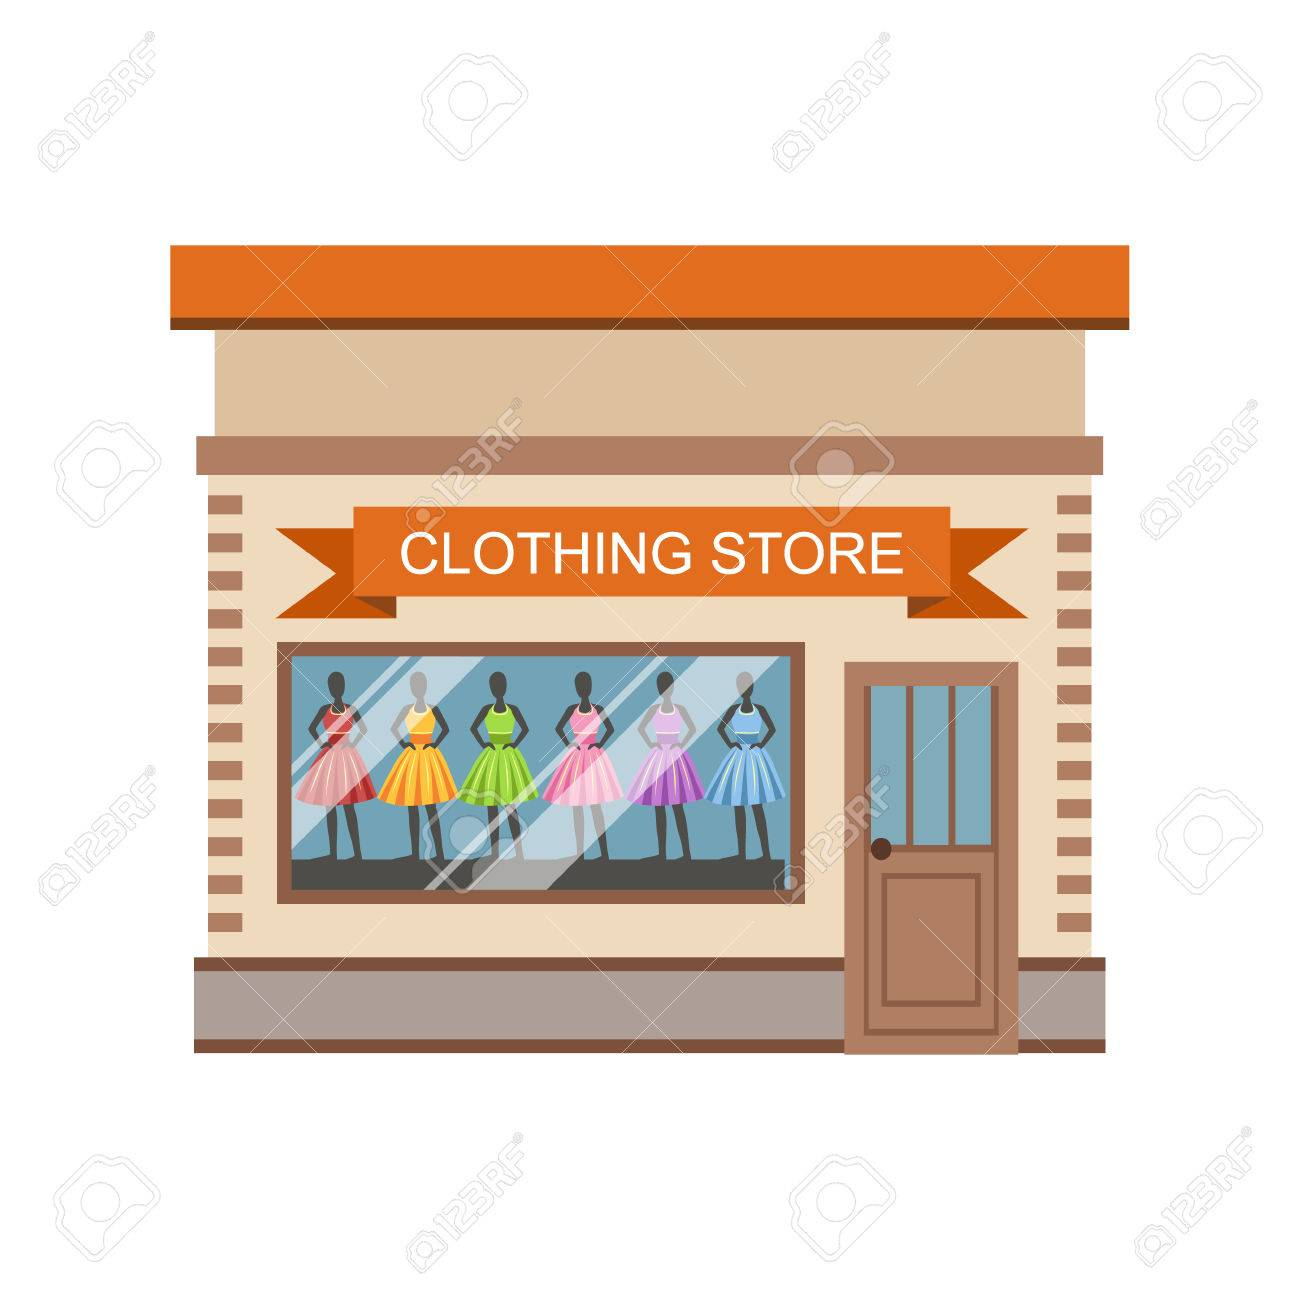 clothing store commercial building facade design colorful detailed